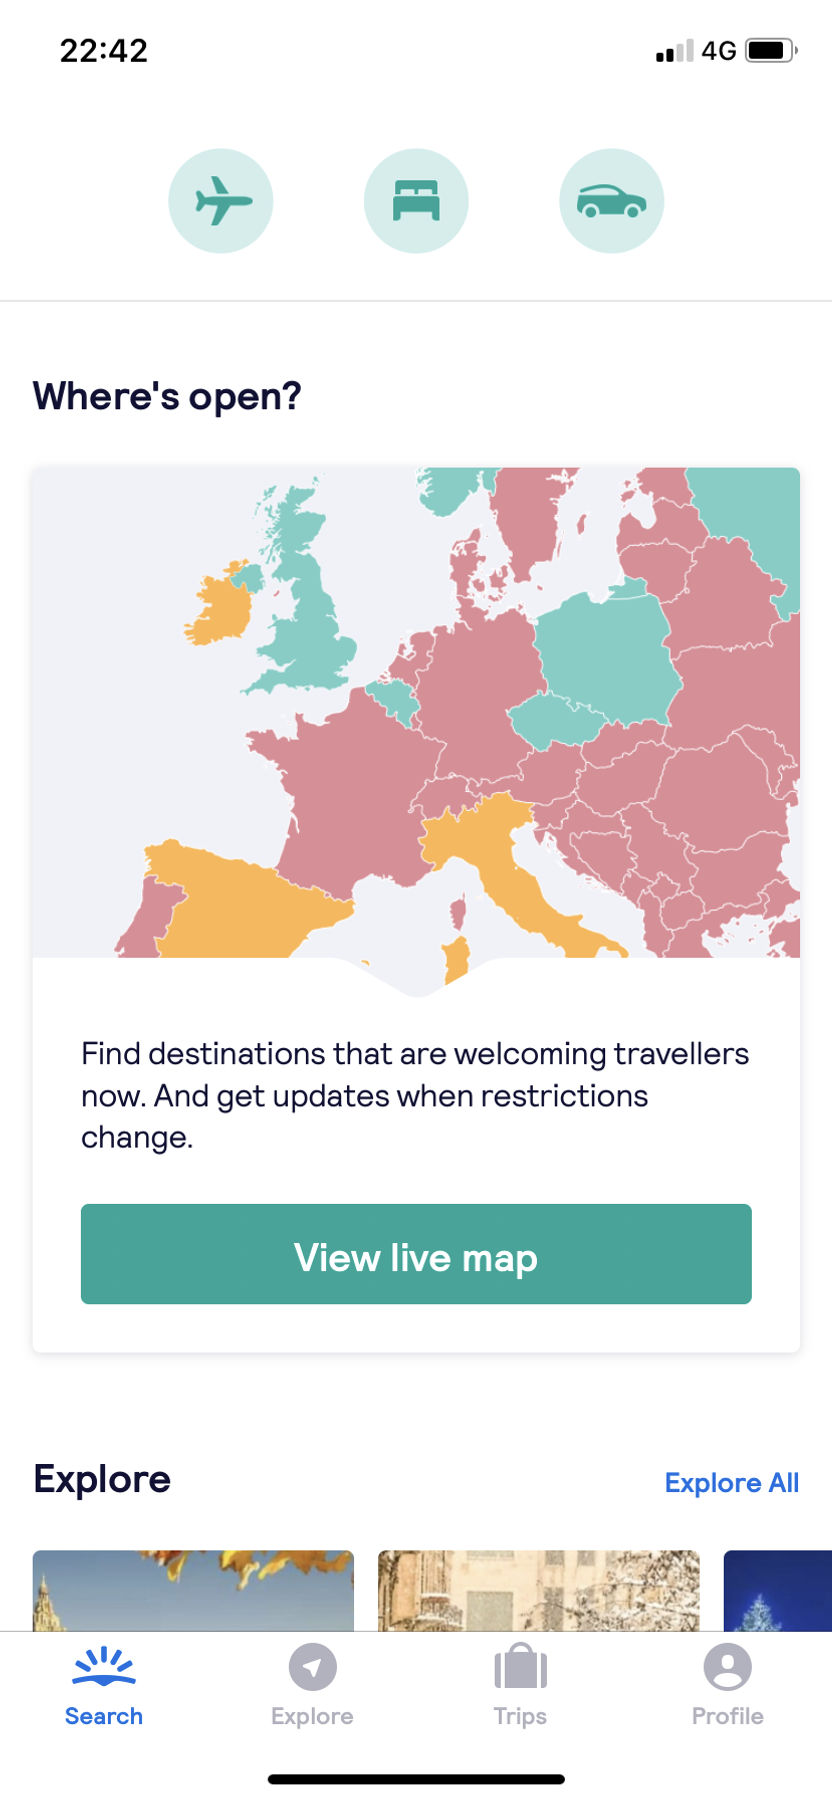 Use the 'Where's Open?' map to search for travel restrictions across the globe. Then, check if open destinations are included in Virgin Atlantic Black Friday deals